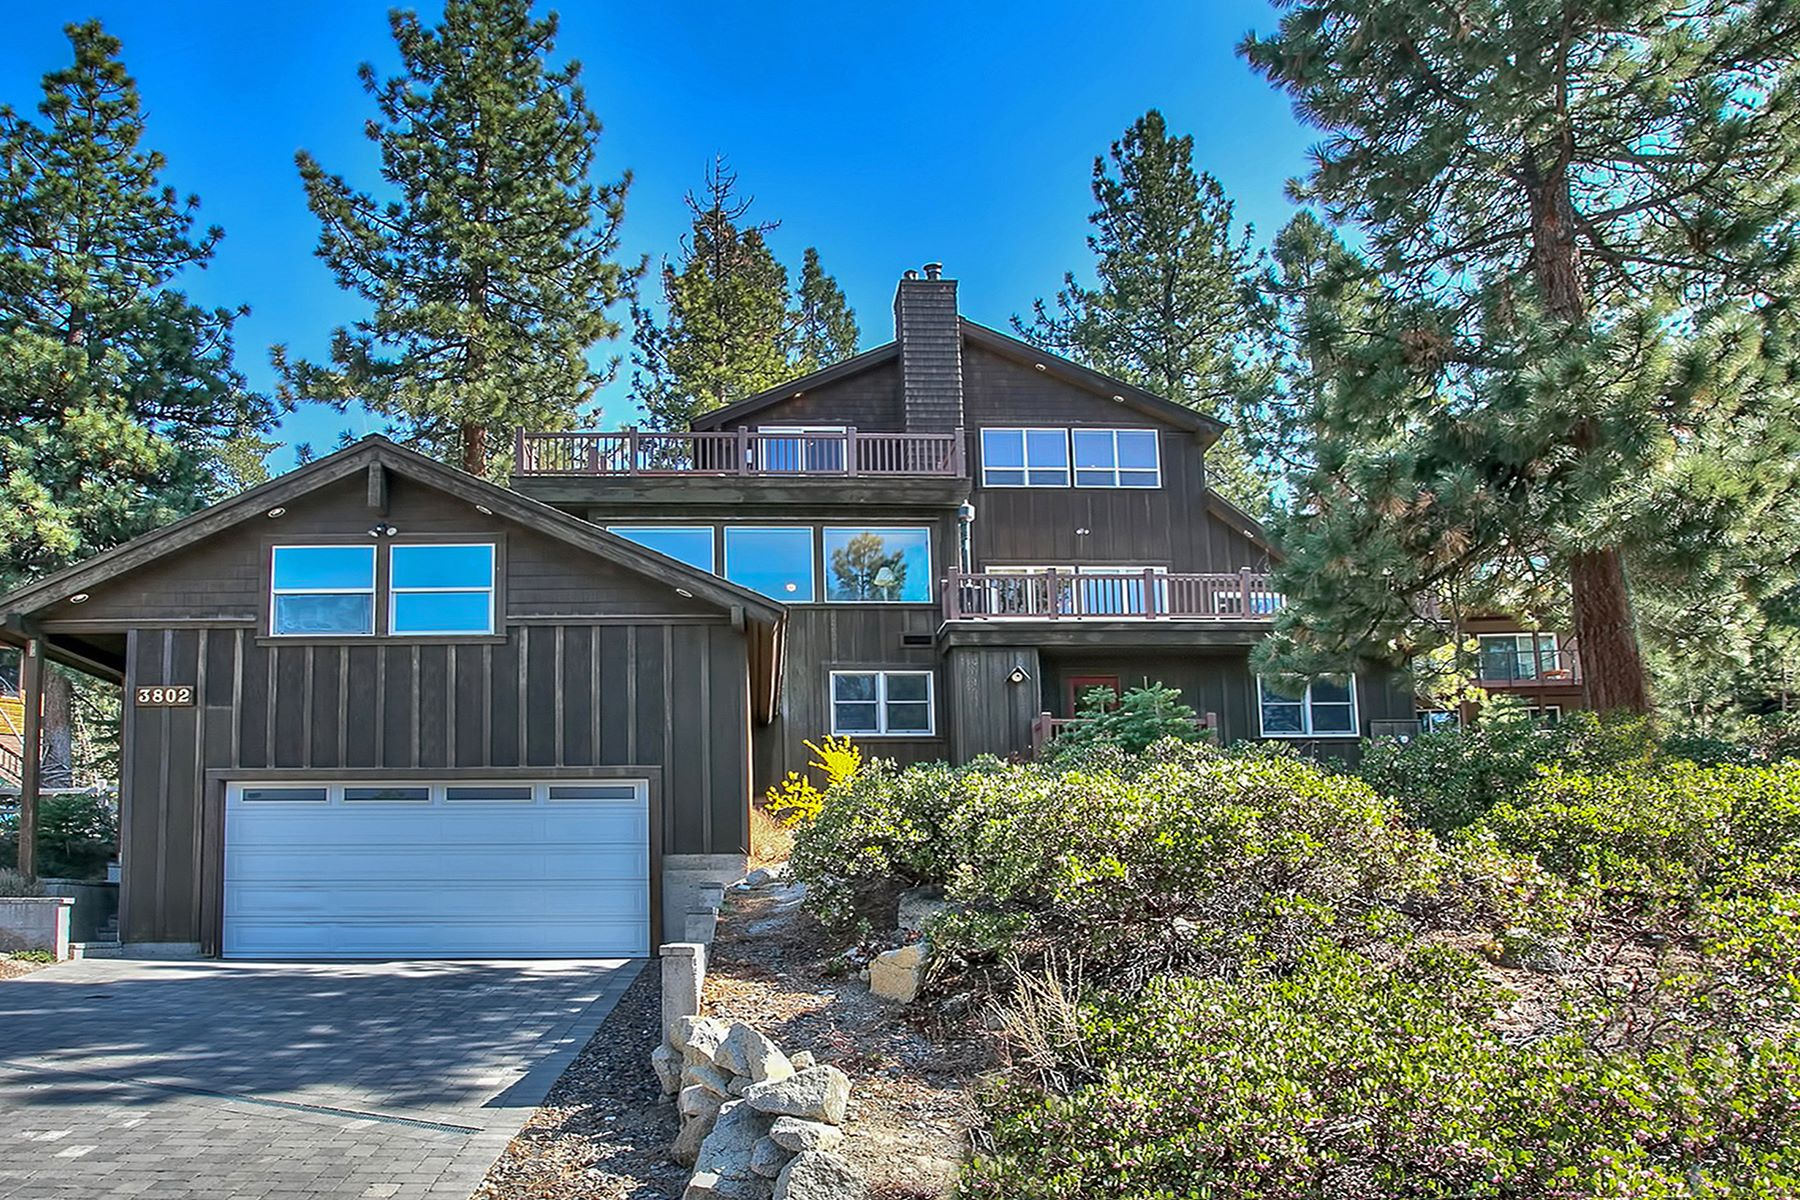 واحد منزل الأسرة للـ Sale في 3802 Lucinda Court 3802 Lucinda Court South Lake Tahoe, California 96150 United States